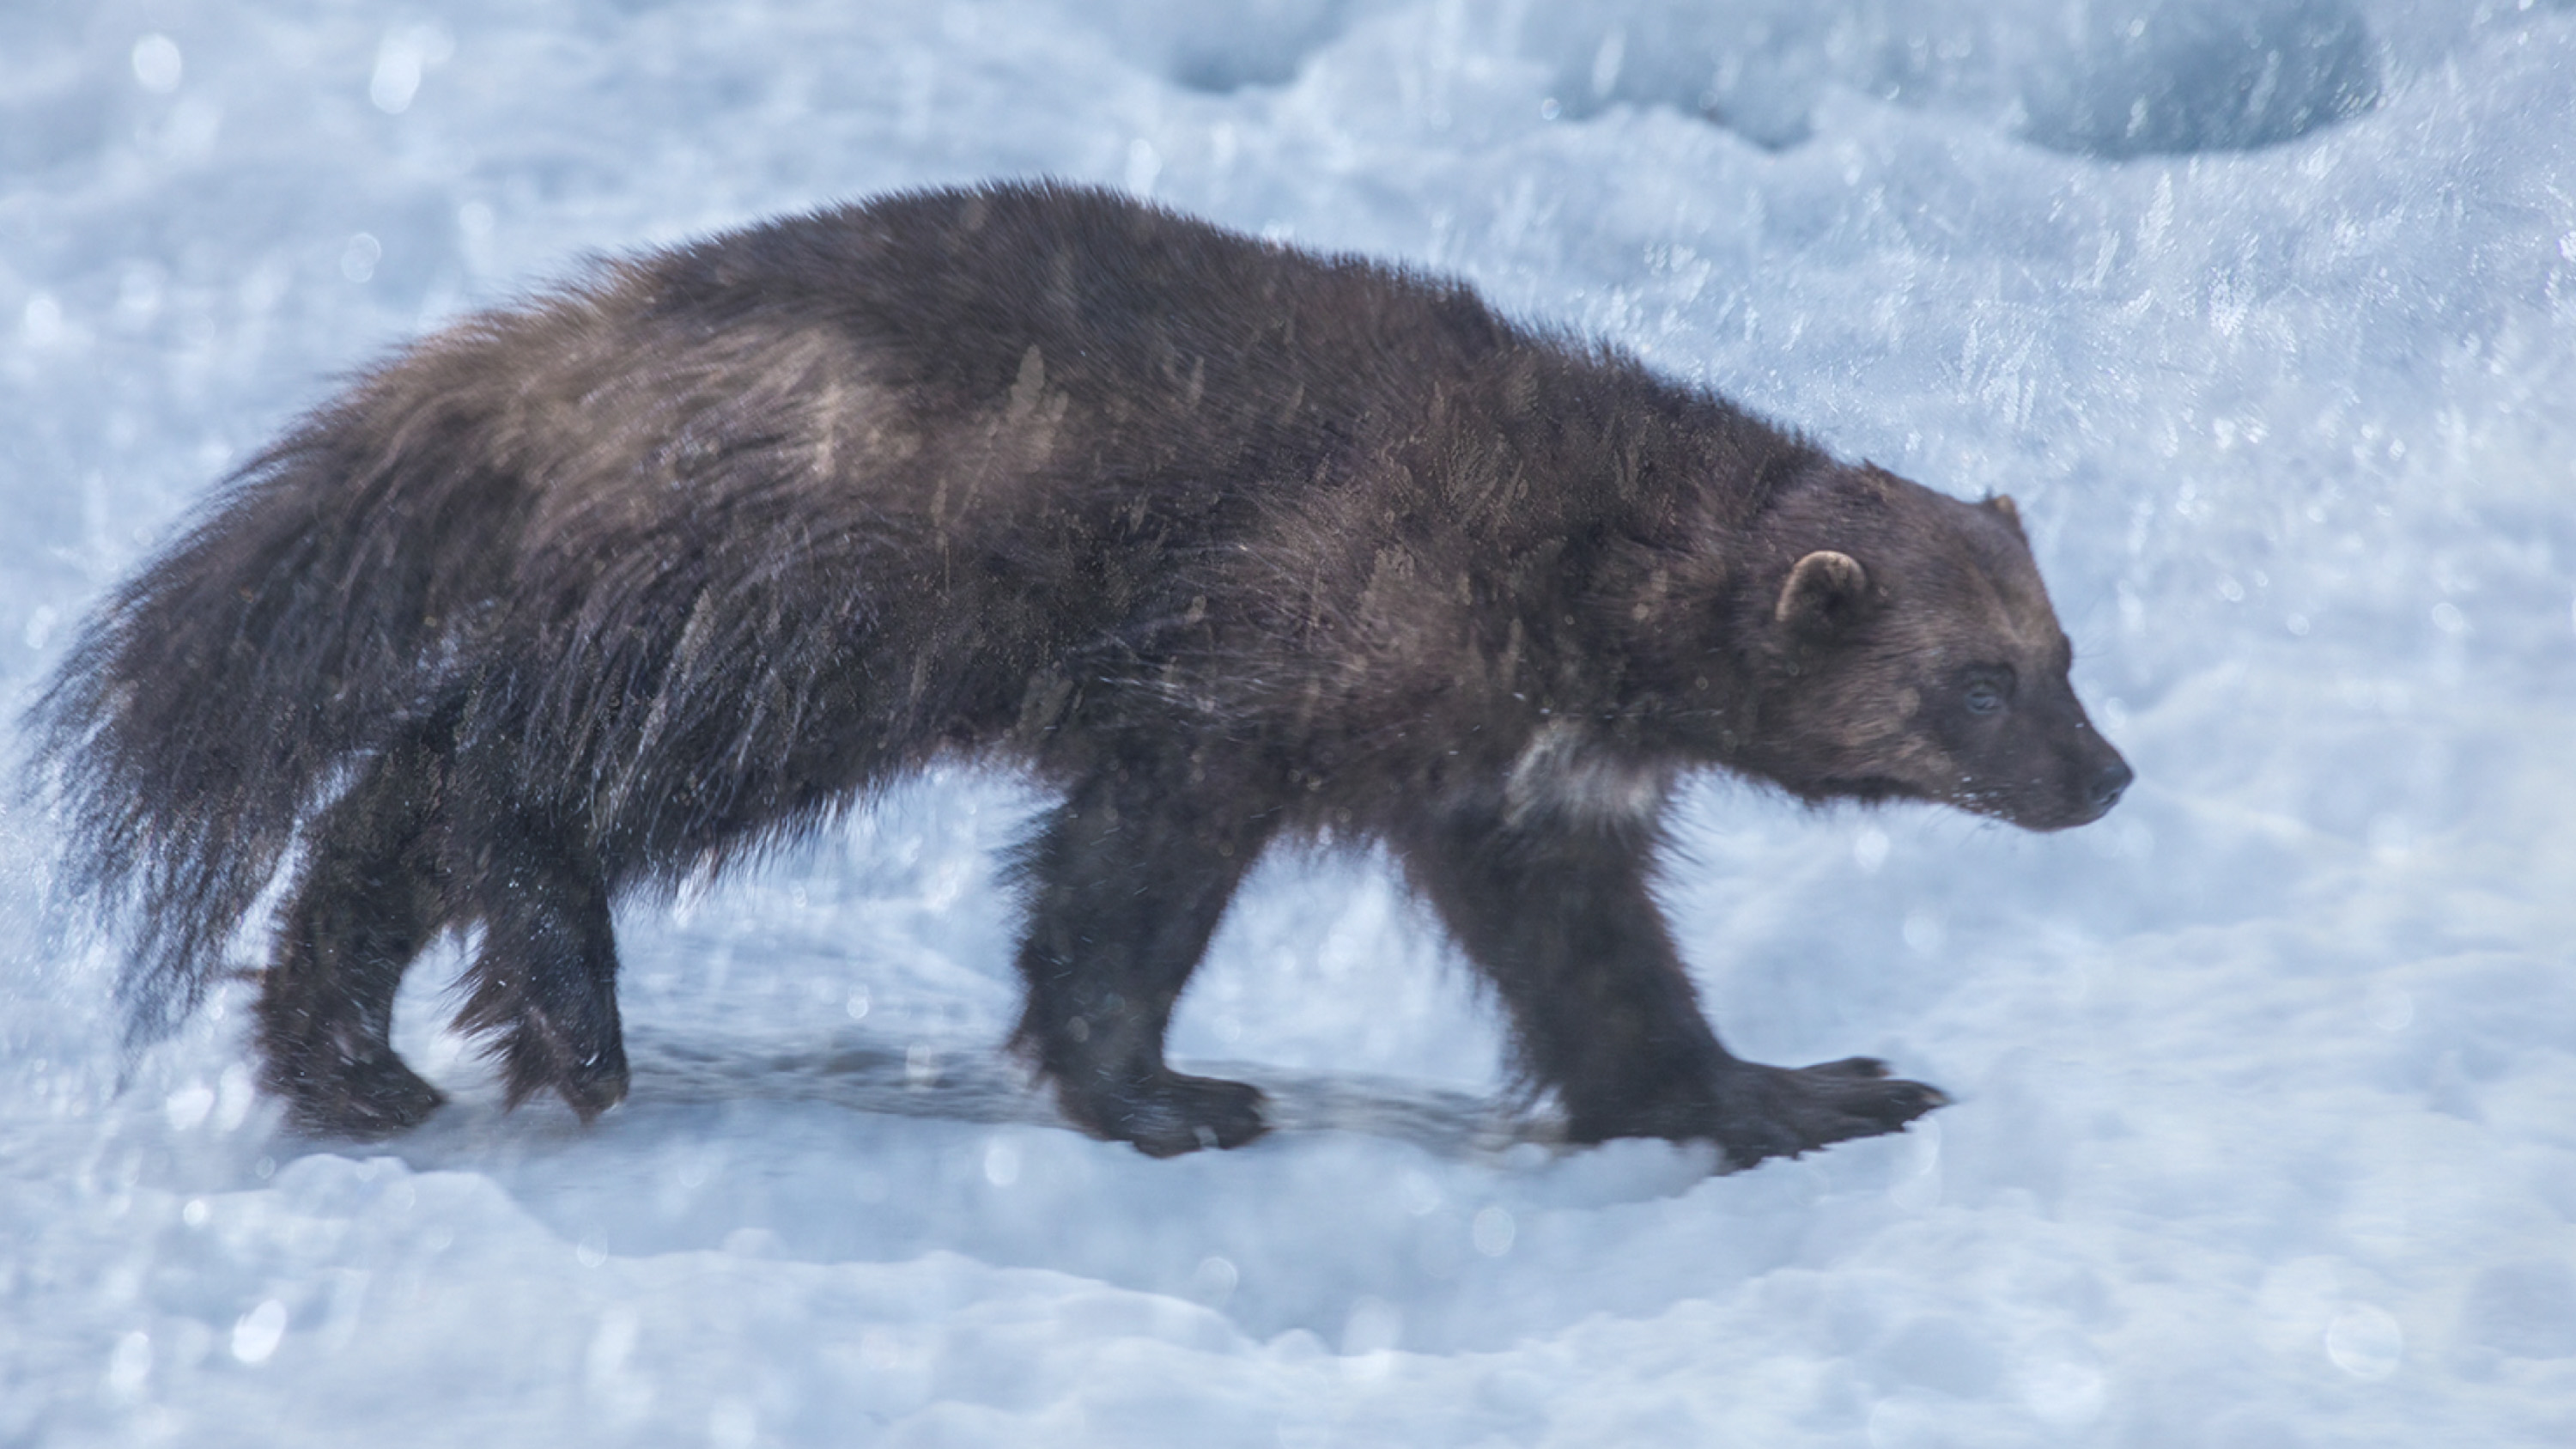 An artist's impression of a wolverine in a blizzard